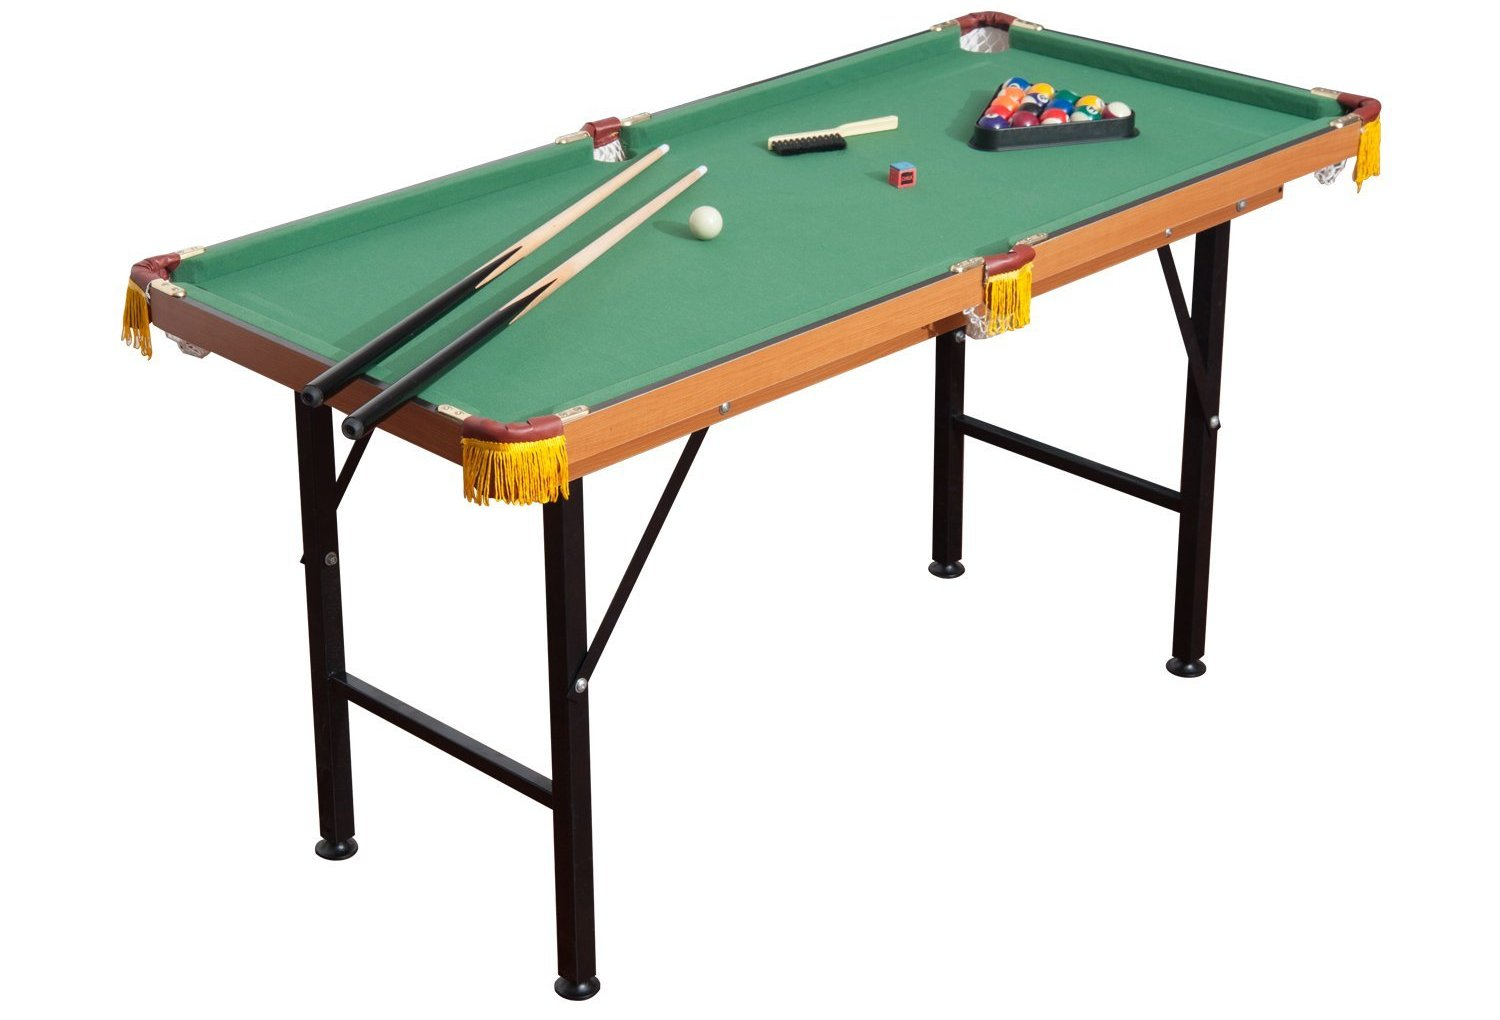 homcom folding miniature billiards pool table image